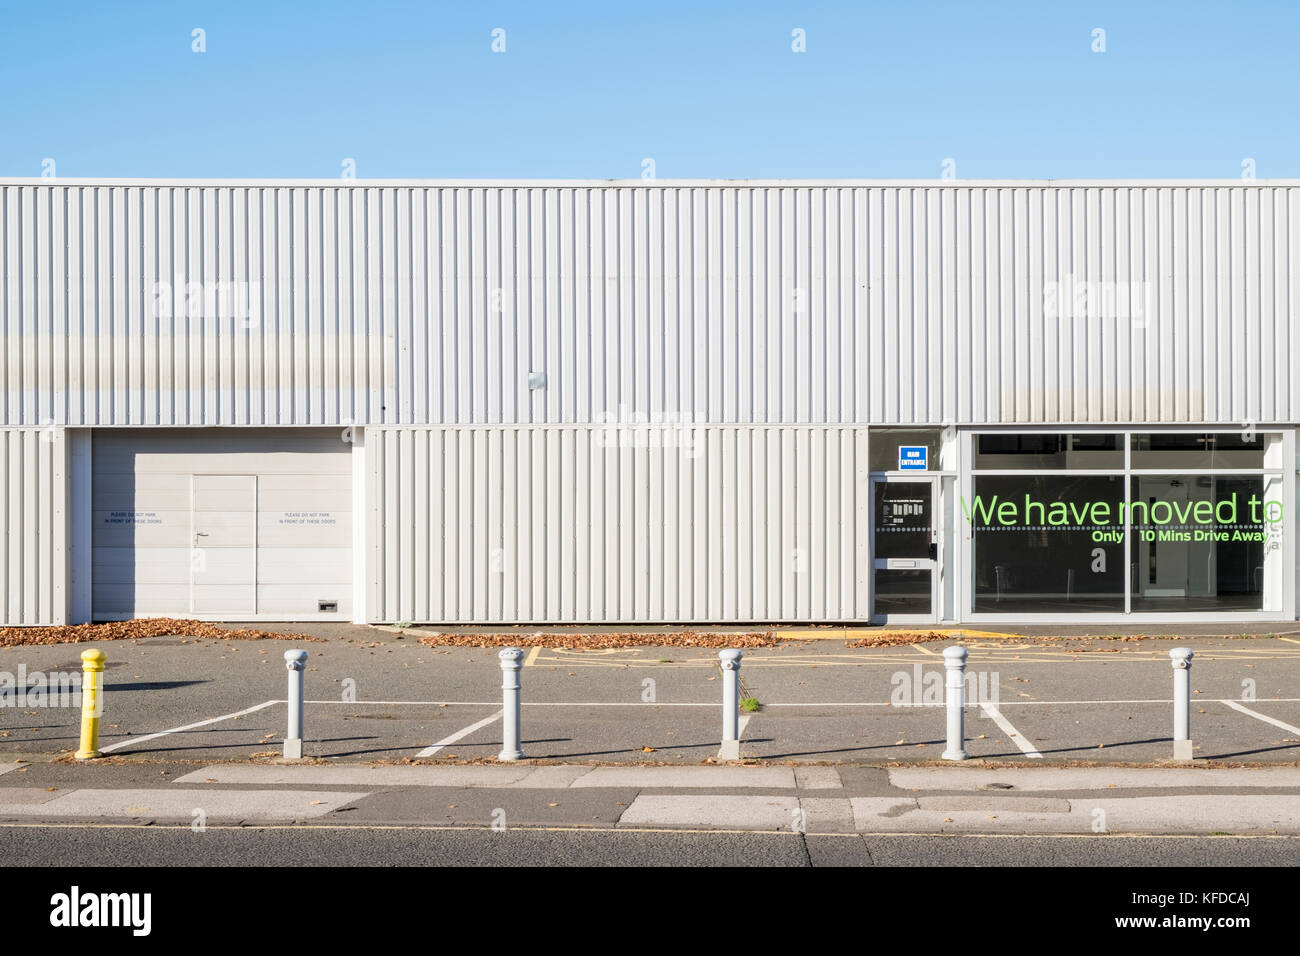 Relocated. Business moved away to new premises, Nottinghamshire, England, UK - Stock Image